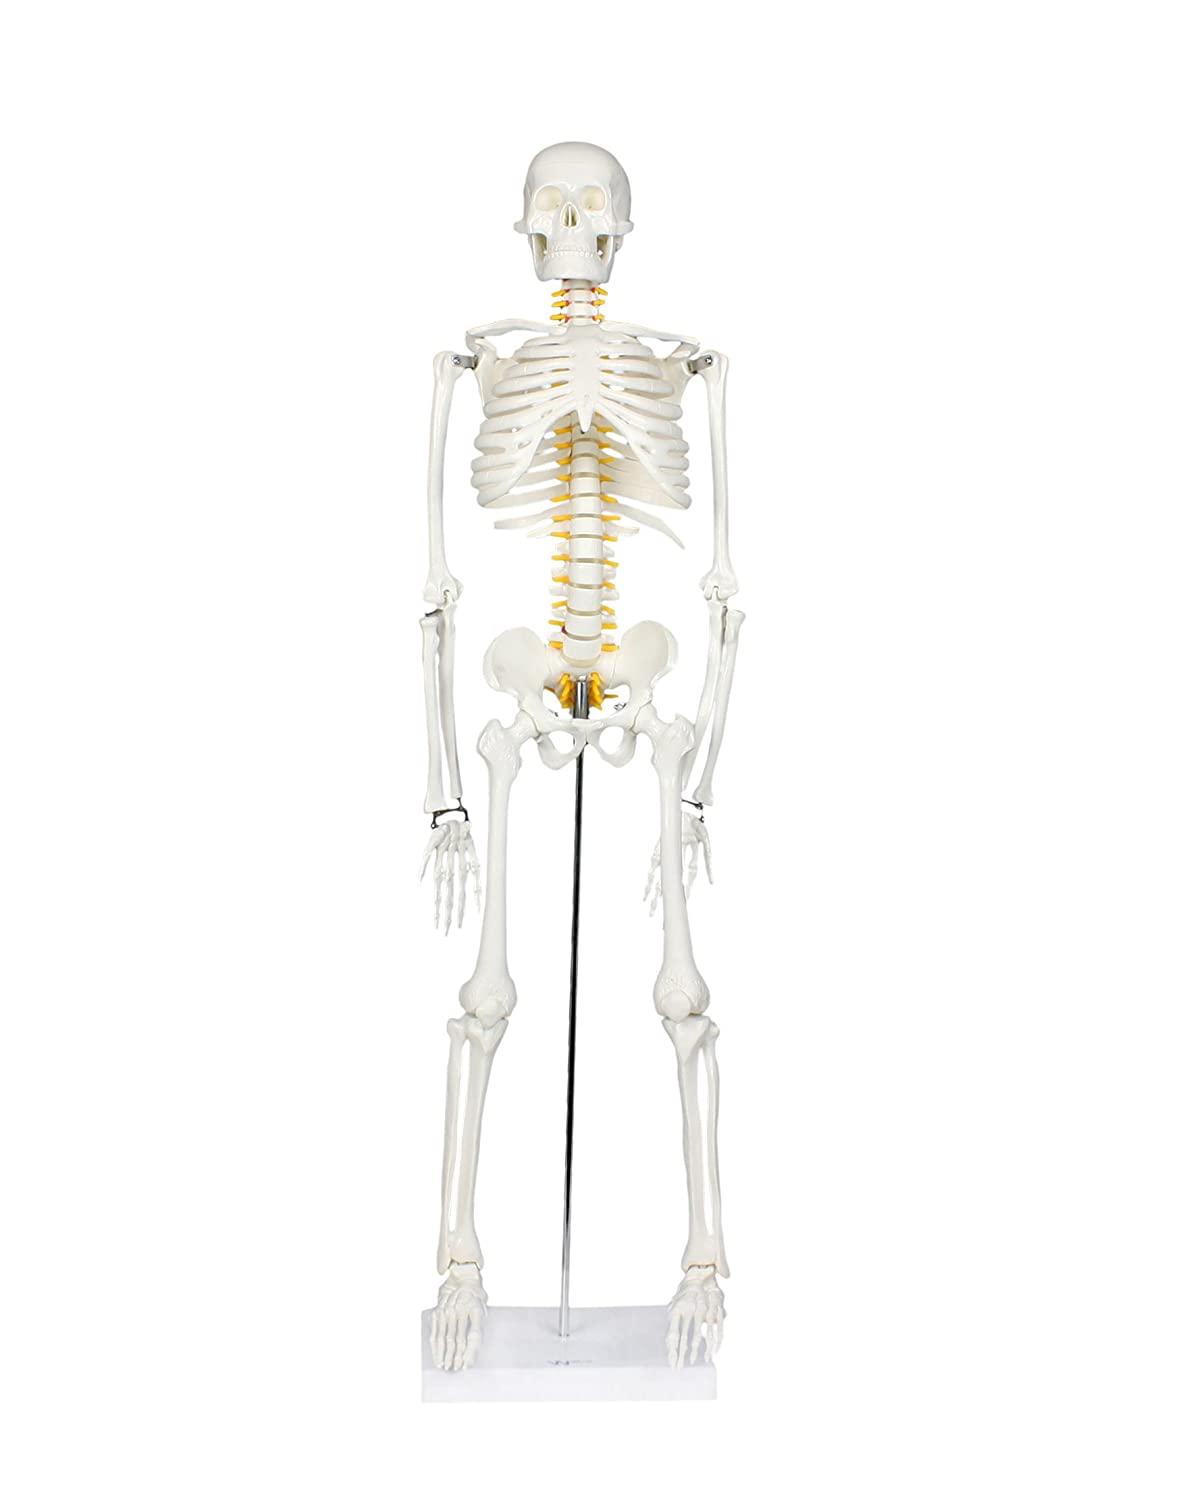 Walter Products B10205 Human Skeleton Model With Nerves Labeled